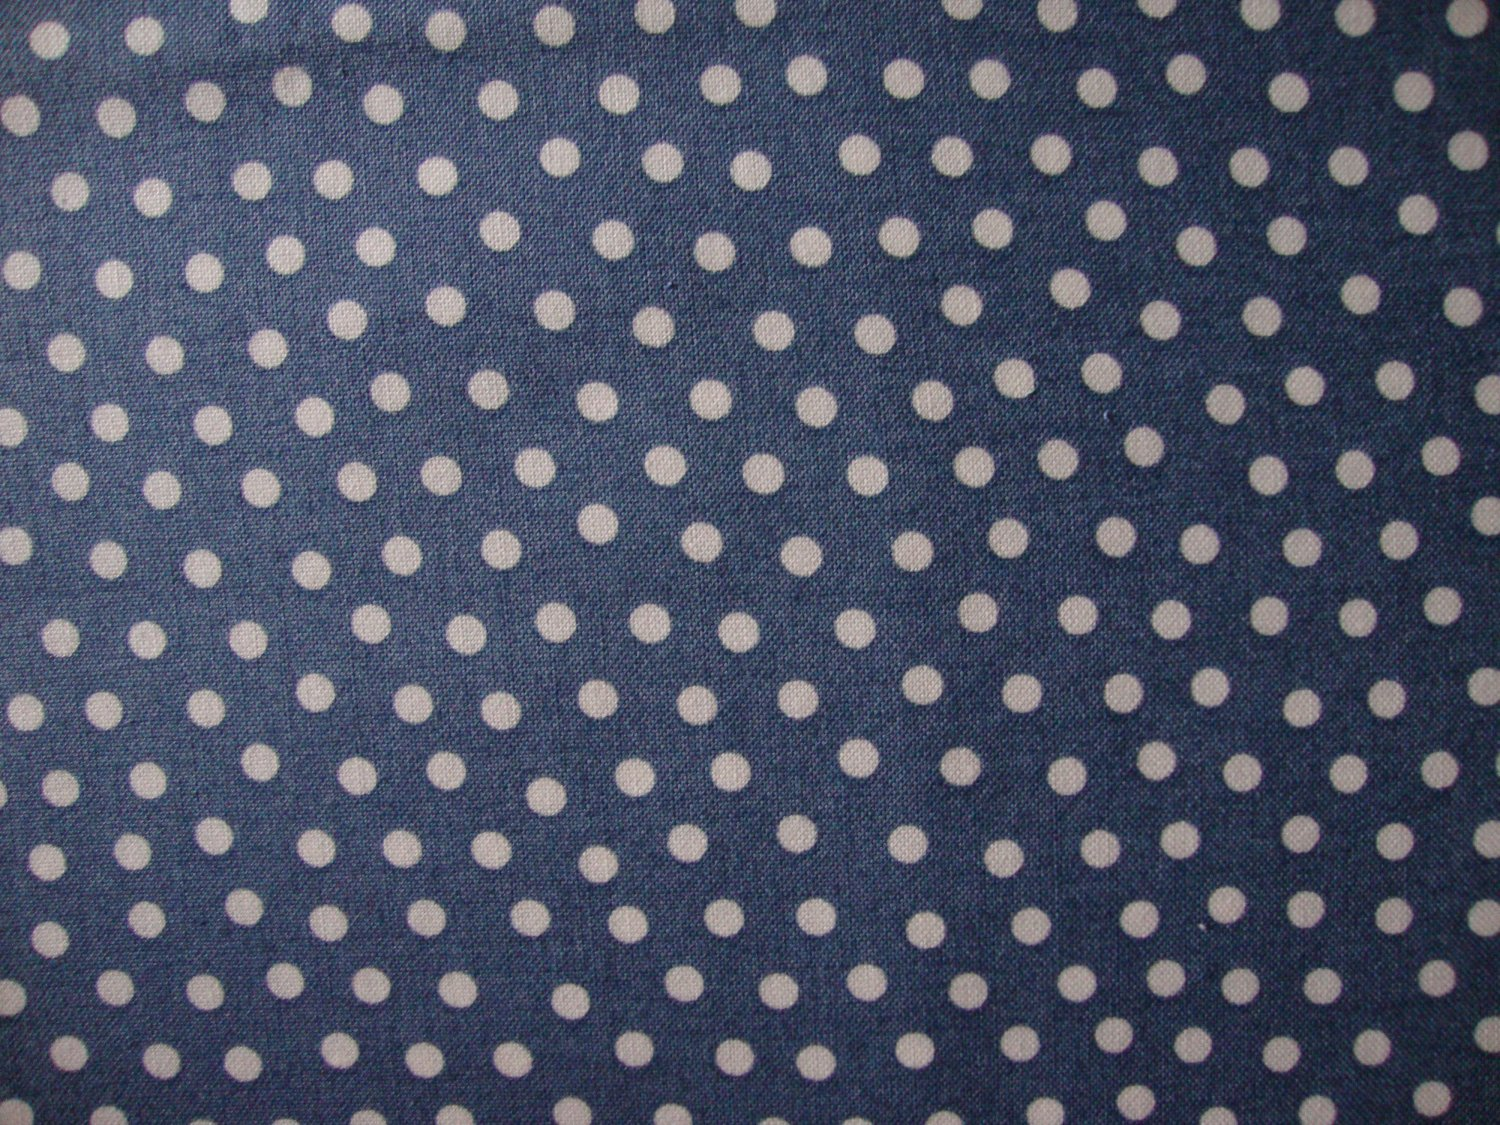 Yard just fun white polka dots on blue cotton